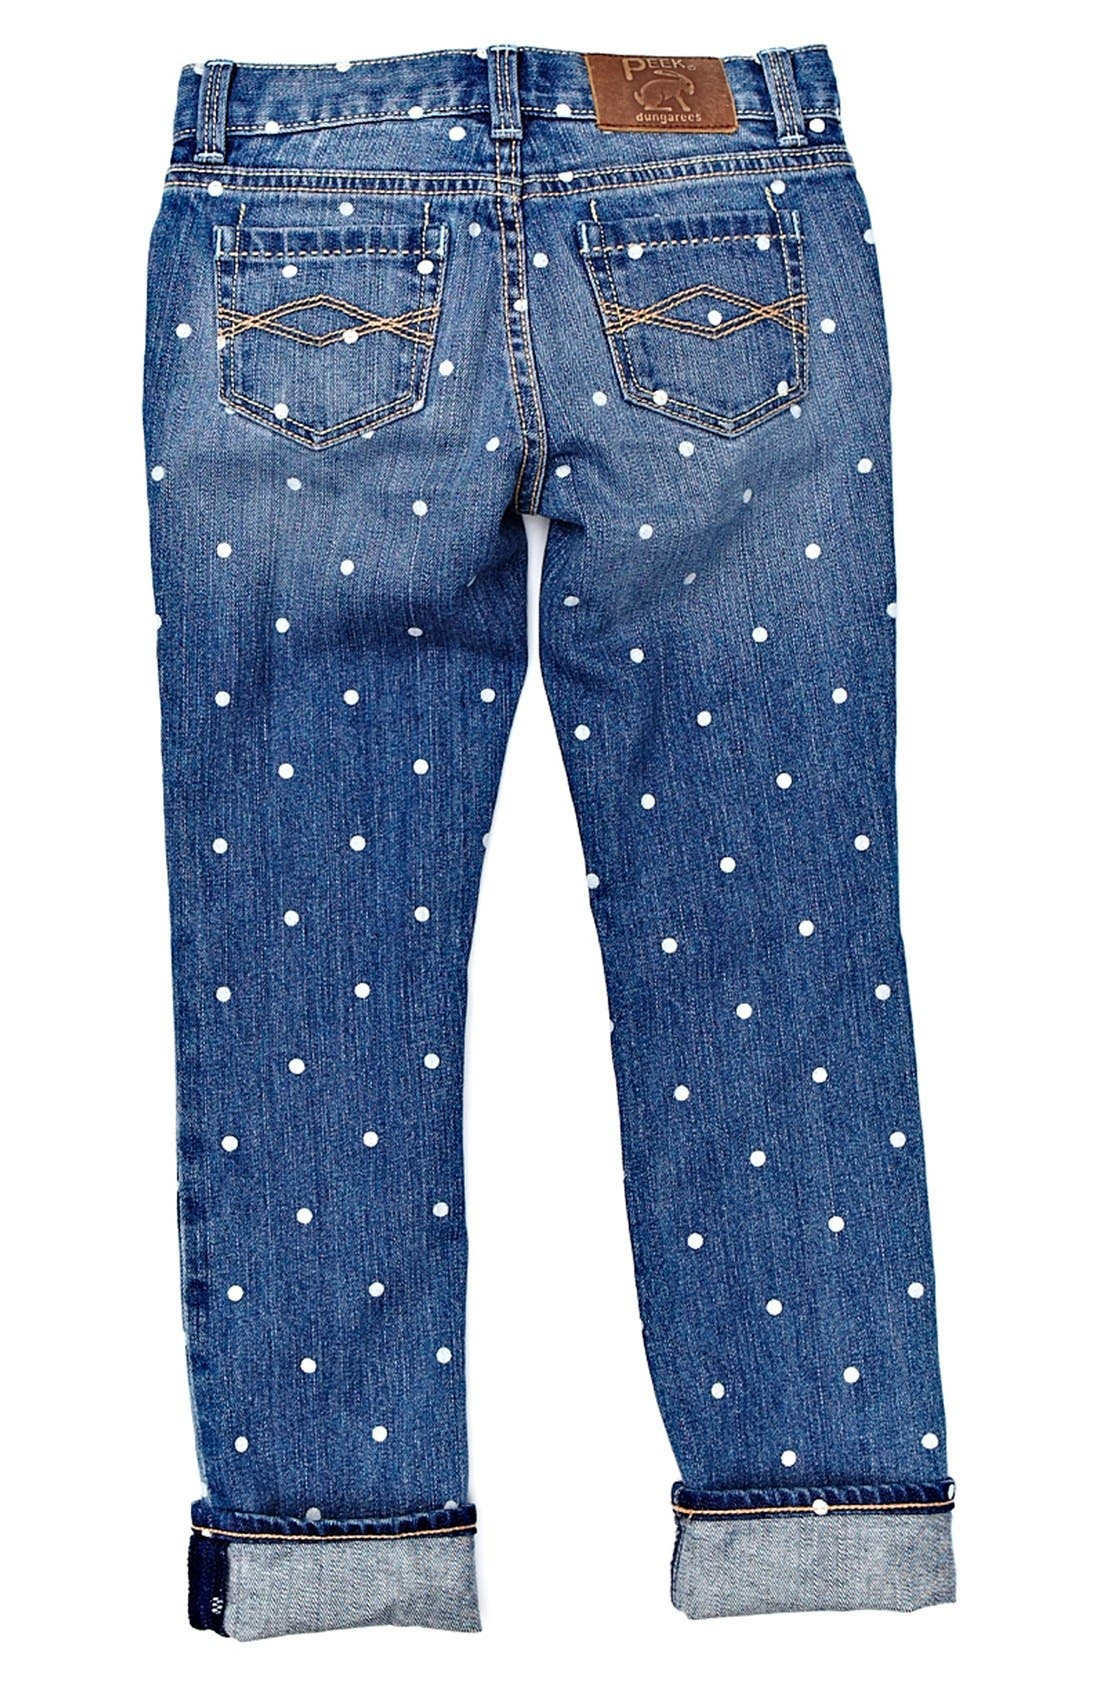 Alternate Image 1 Selected - Peek 'Audrey - Dot' Jeans (Toddler Girls, Little Girls & Big Girls)